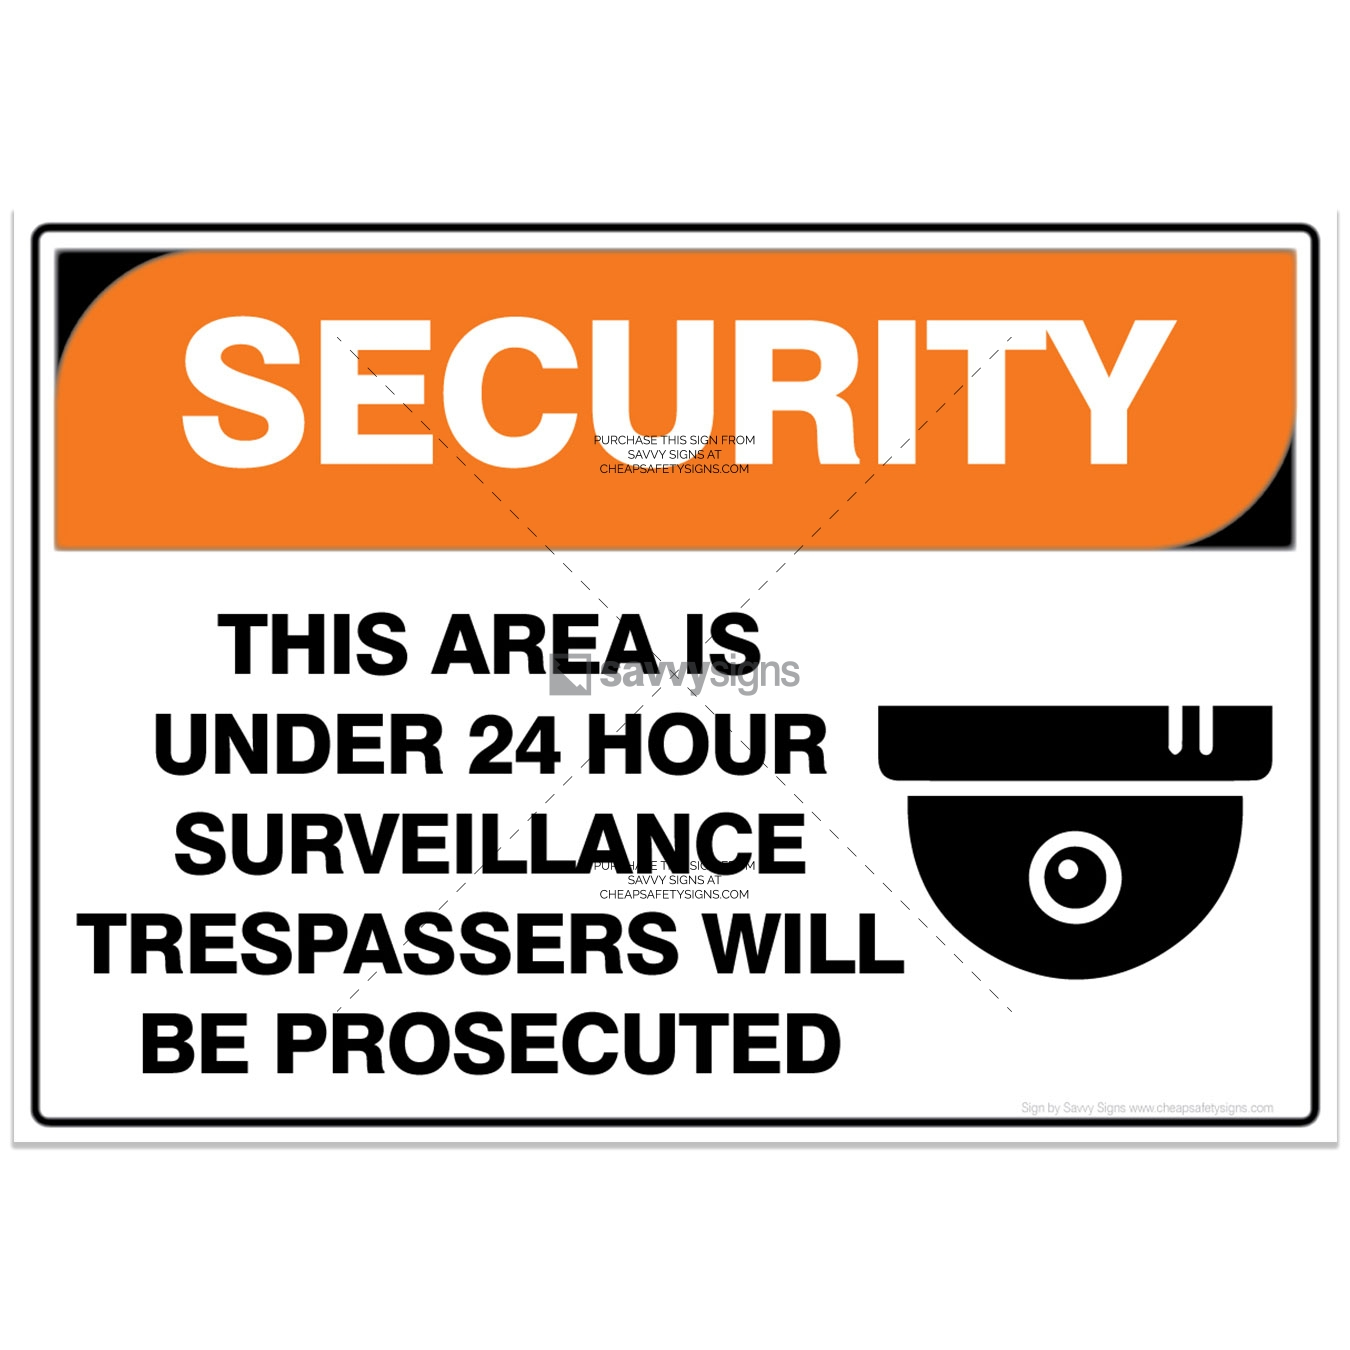 SSSEC3023-SECURITY-Workplace-Safety-Signs_Savvy-Signs_v3